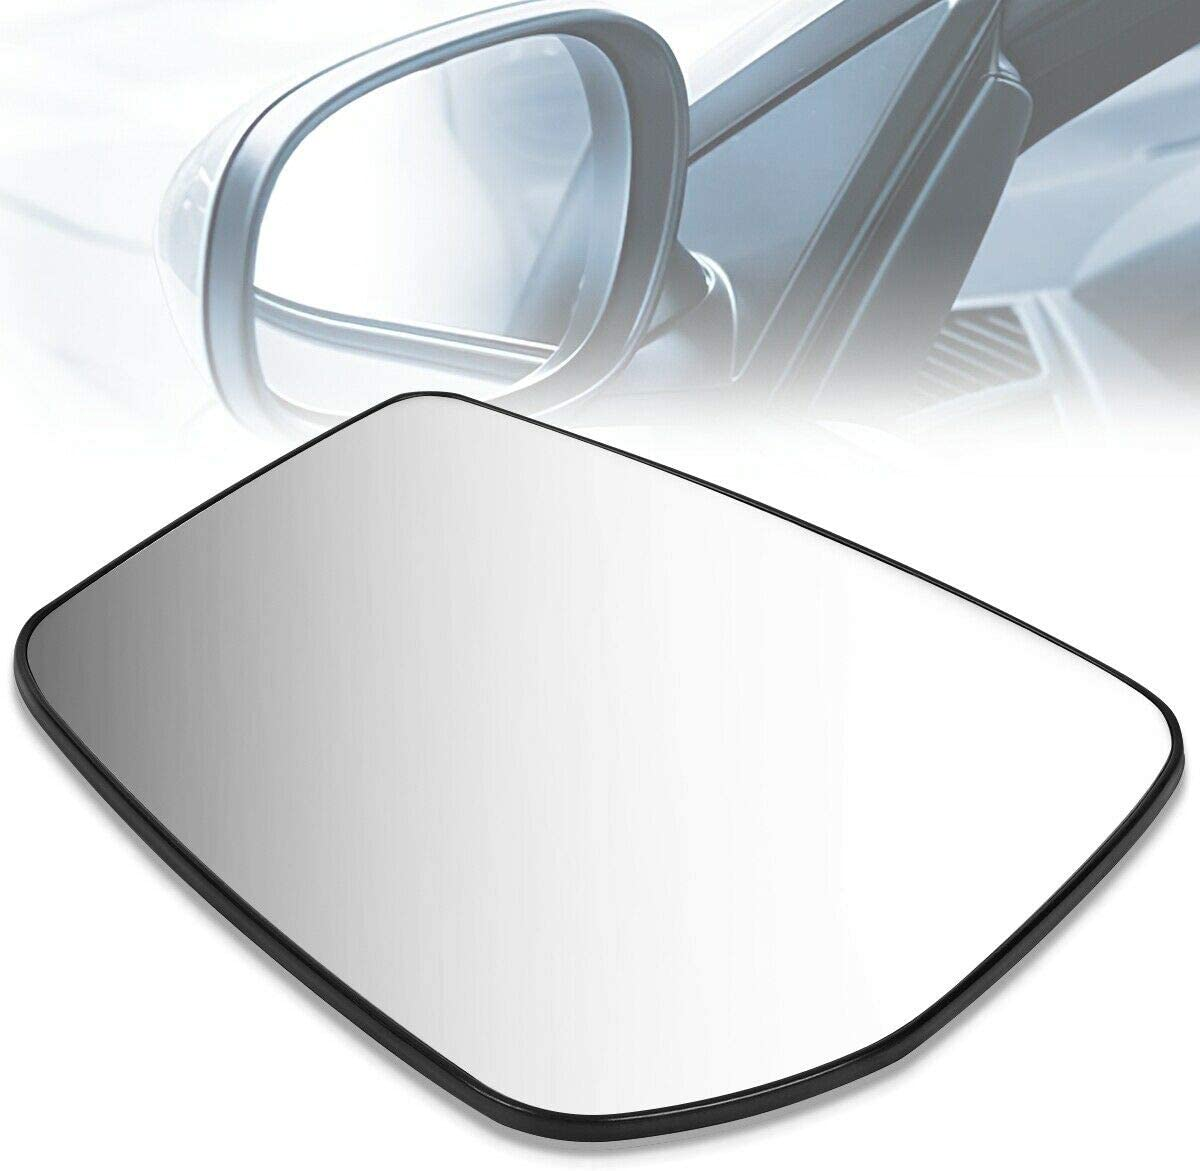 NEW Towing Mirrors Compatible with Versa Sedan Styl Soldering 2015-2018 Industry No. 1 OE